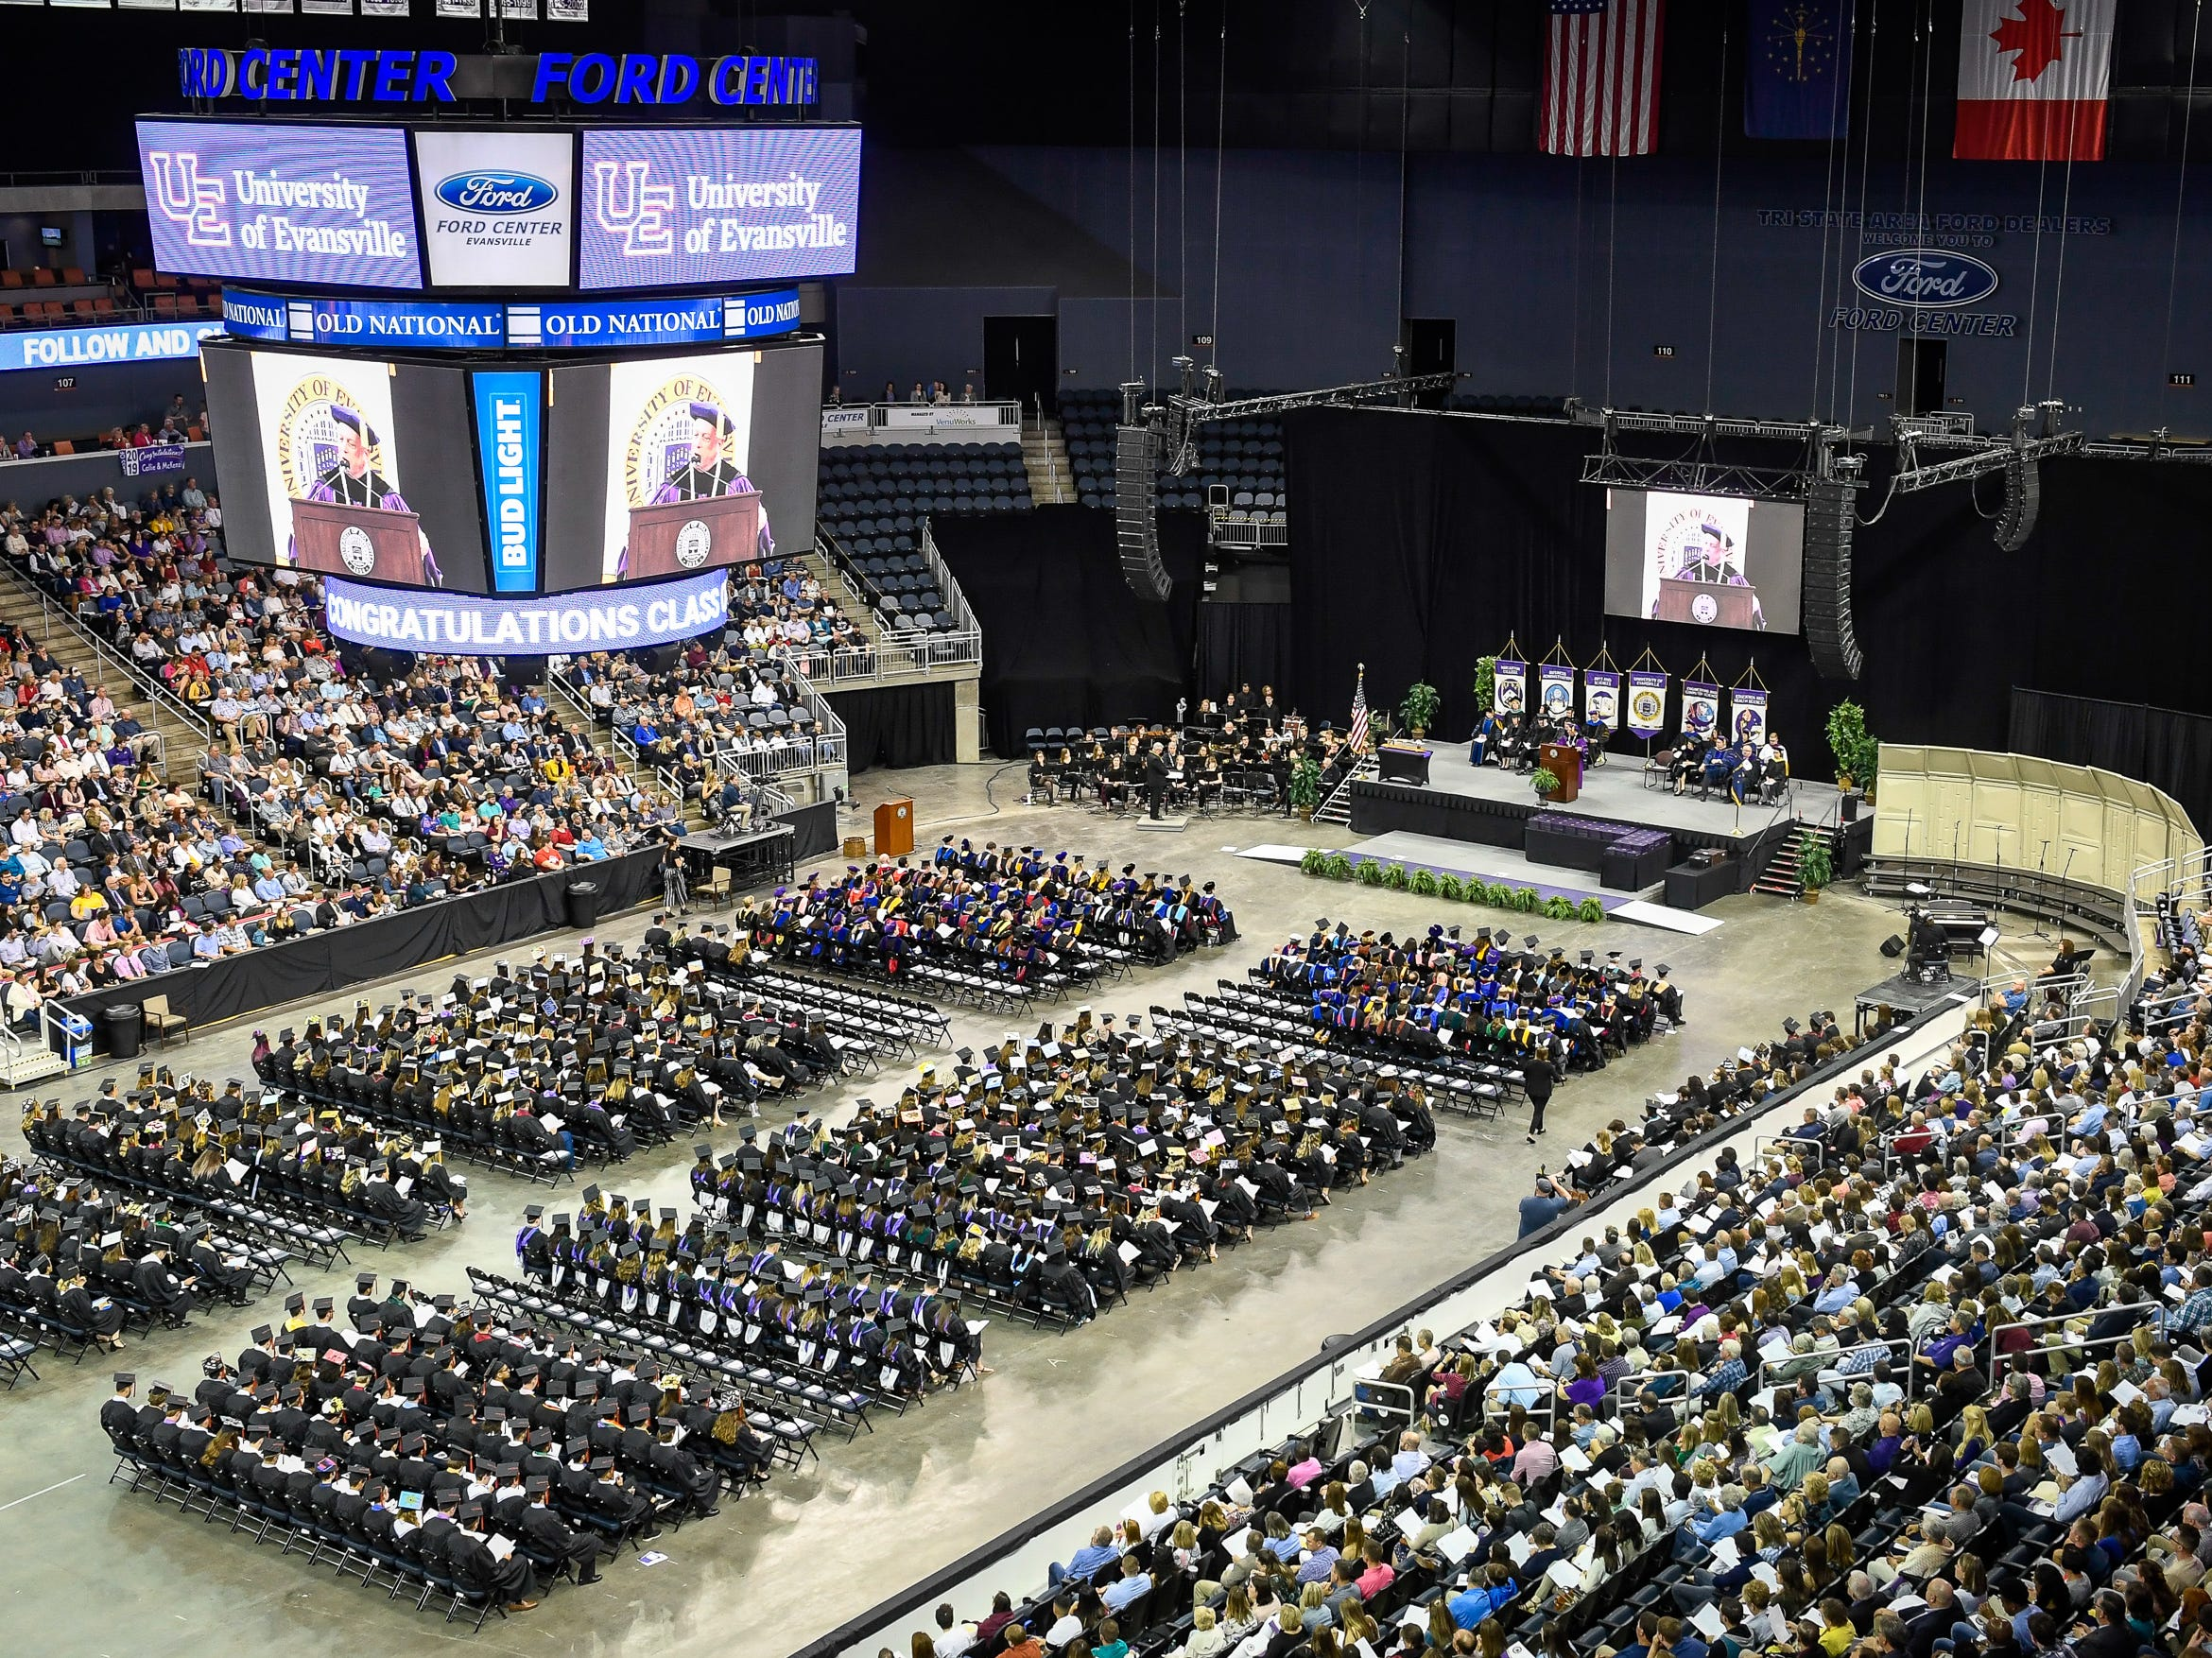 The University of Evansville's 161st commencement ceremony held at the Ford Center Saturday, May 11, 2019.